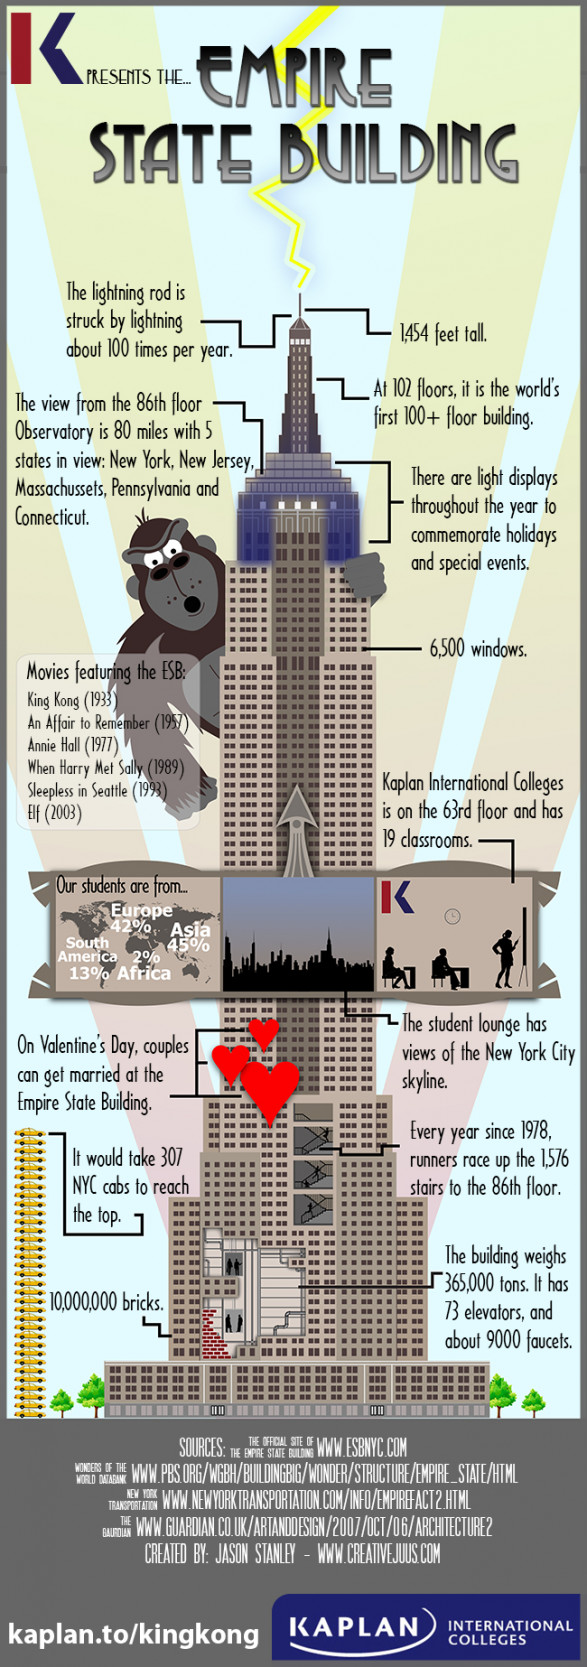 Kaplan presents the Empire State Building